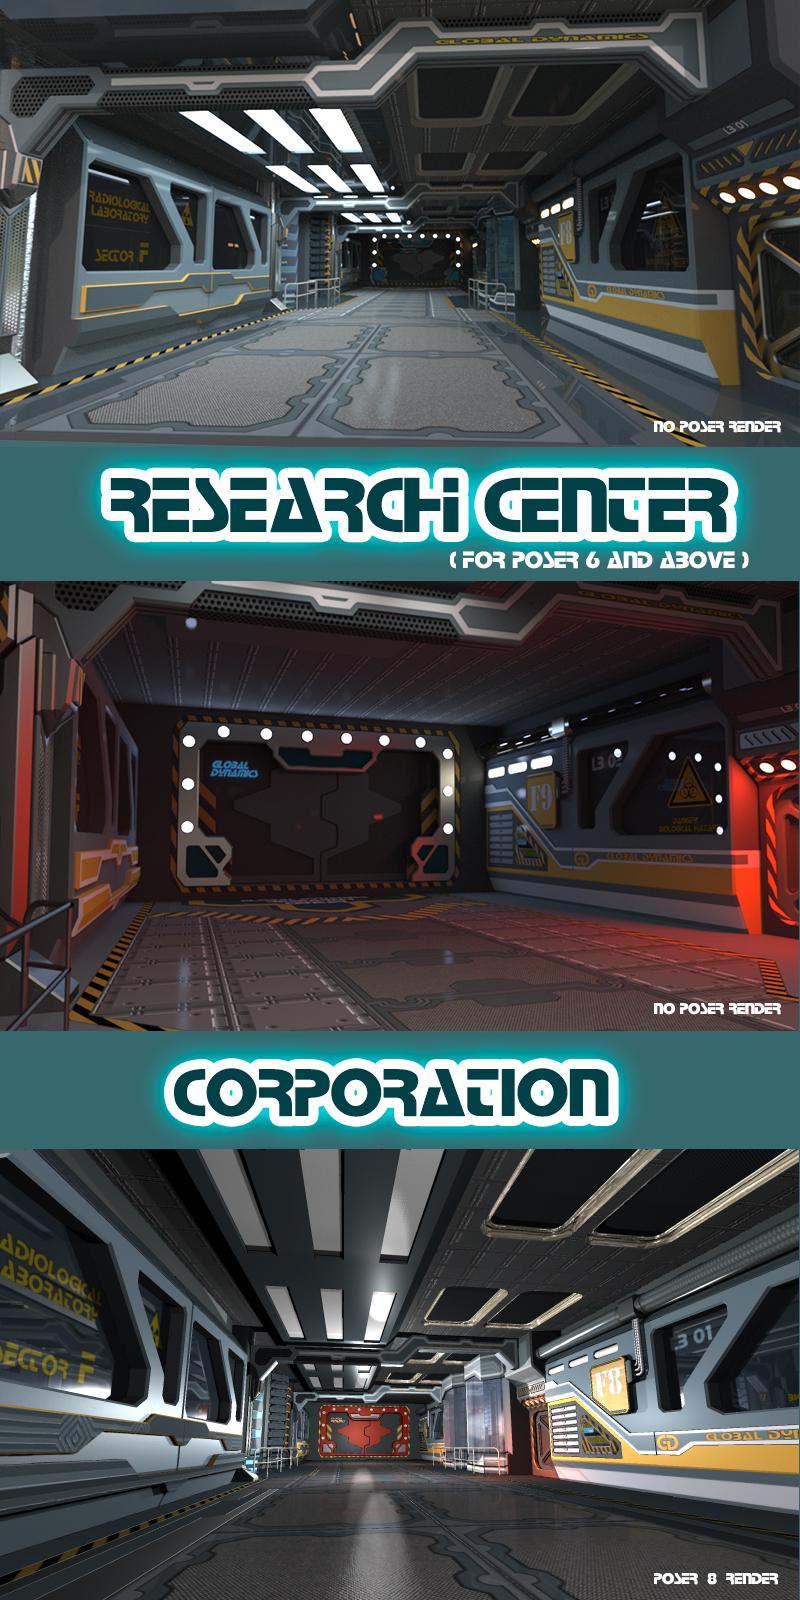 AJ Research Center